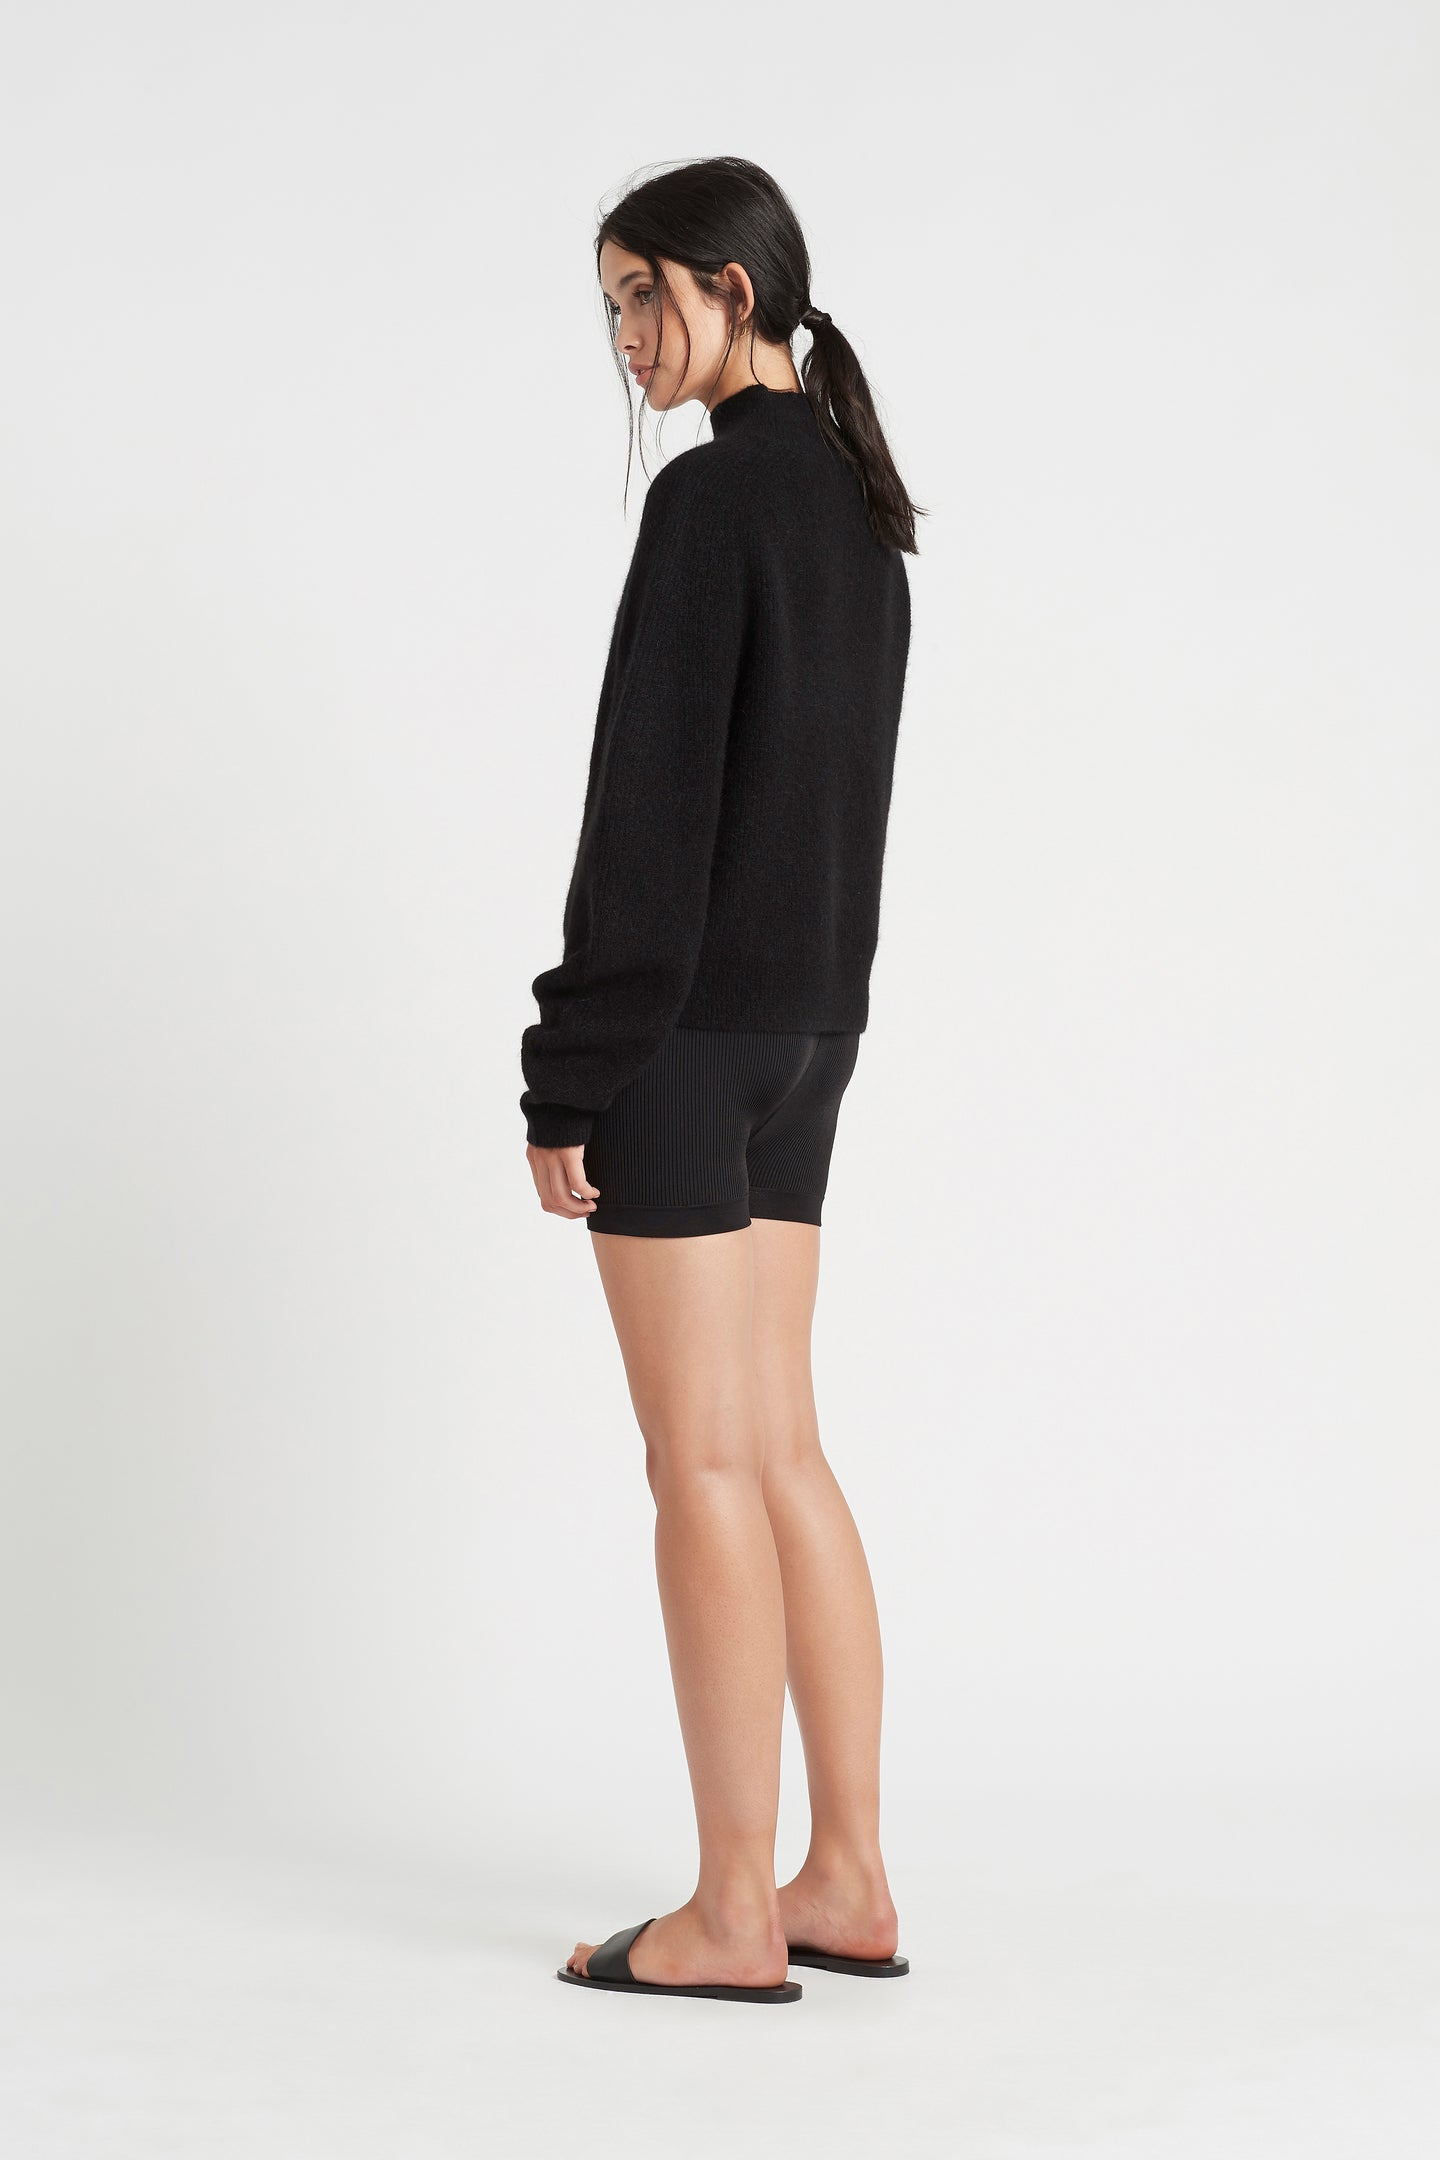 SIR the label INGRID SHORT BLACK